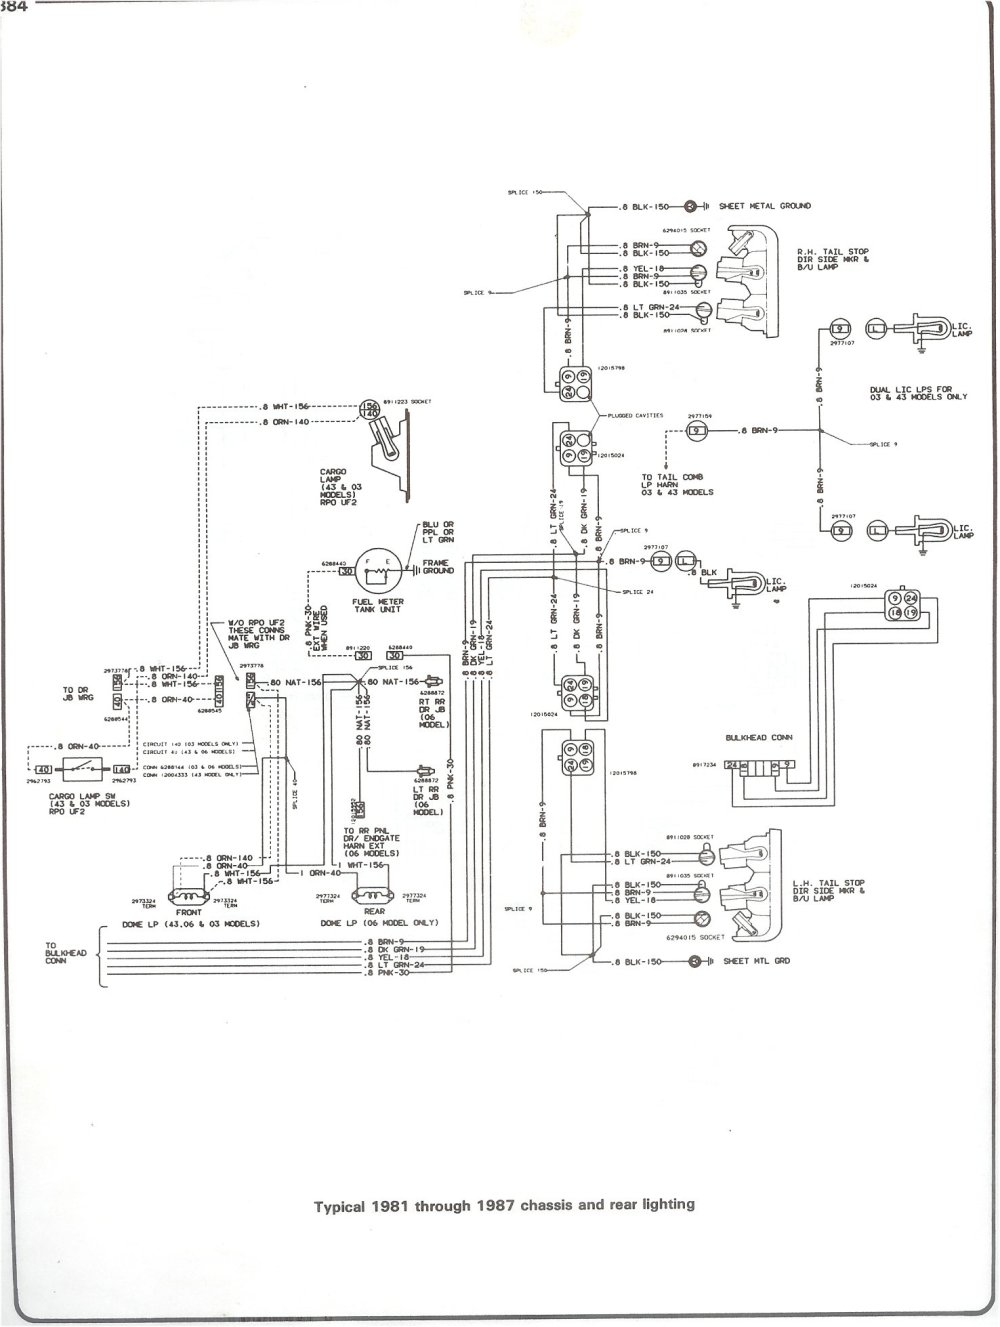 medium resolution of 87 s10 wiper wiring diagram today wiring diagram87 s10 wiper wiring diagram wiring library 1988 s10